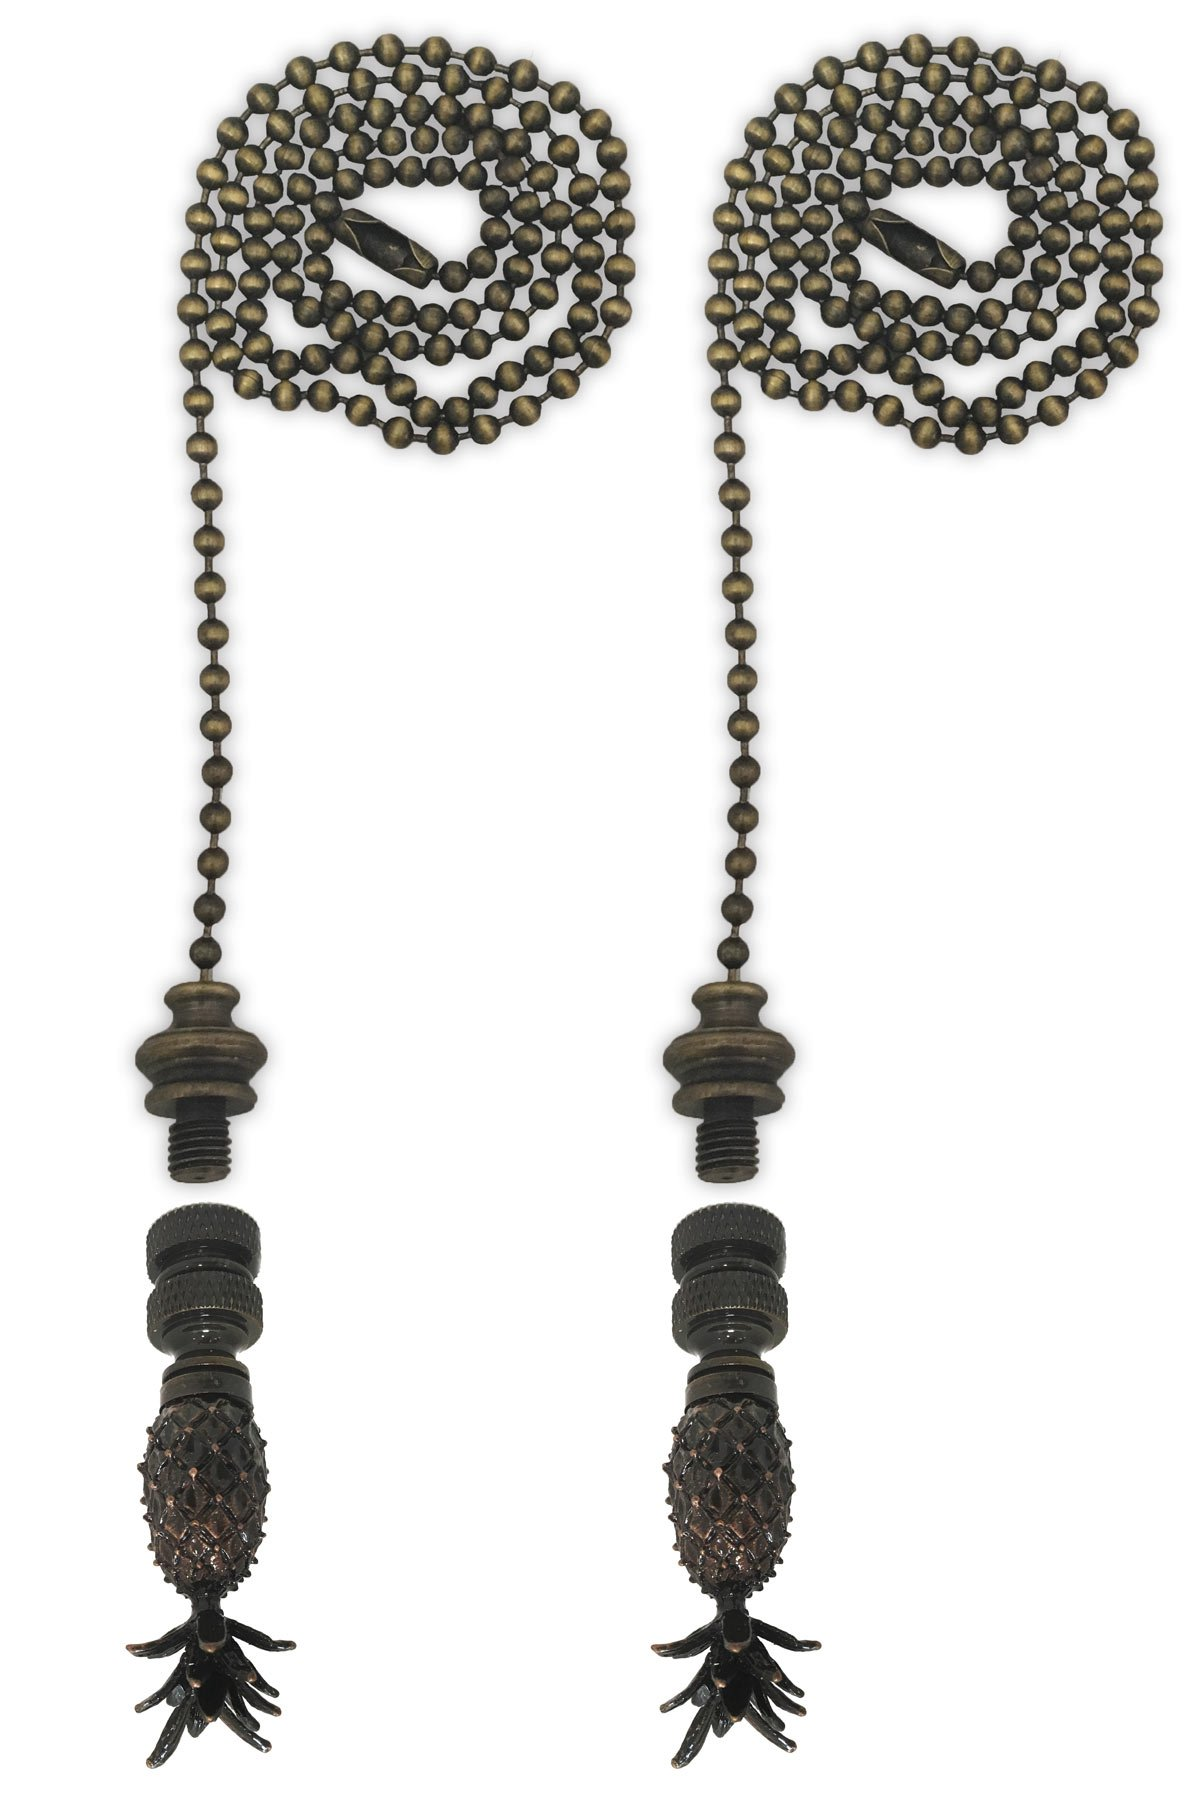 Royal Designs Fan Pull Chain with Vintage Pineapple Finial - Antique Brass - Set of 2